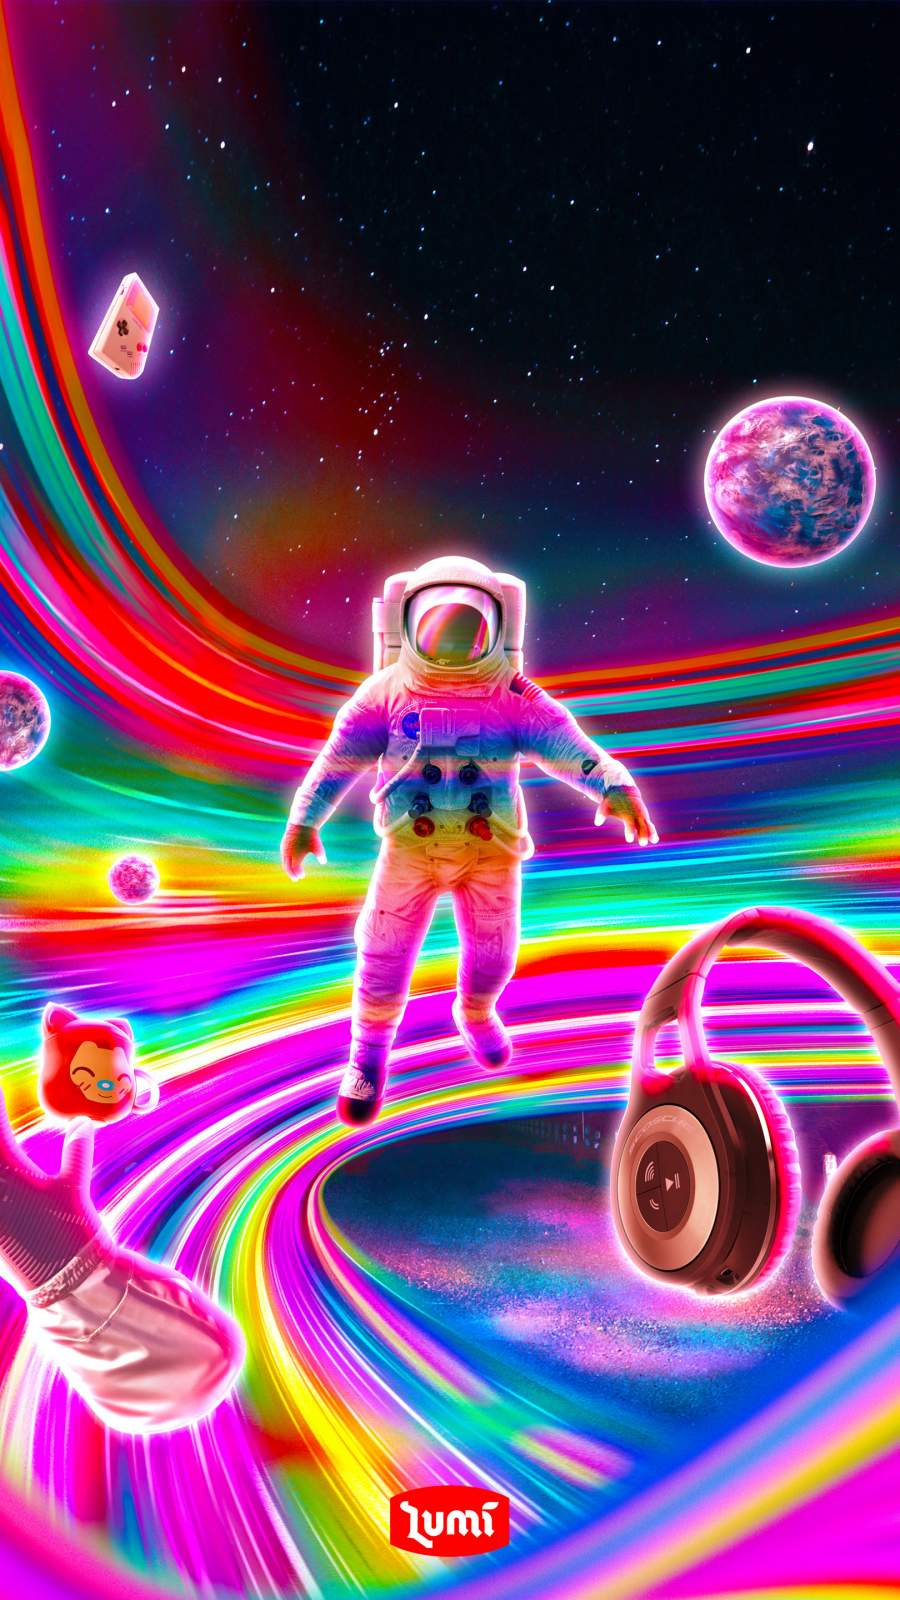 Rainbow Space iPhone Wallpaper